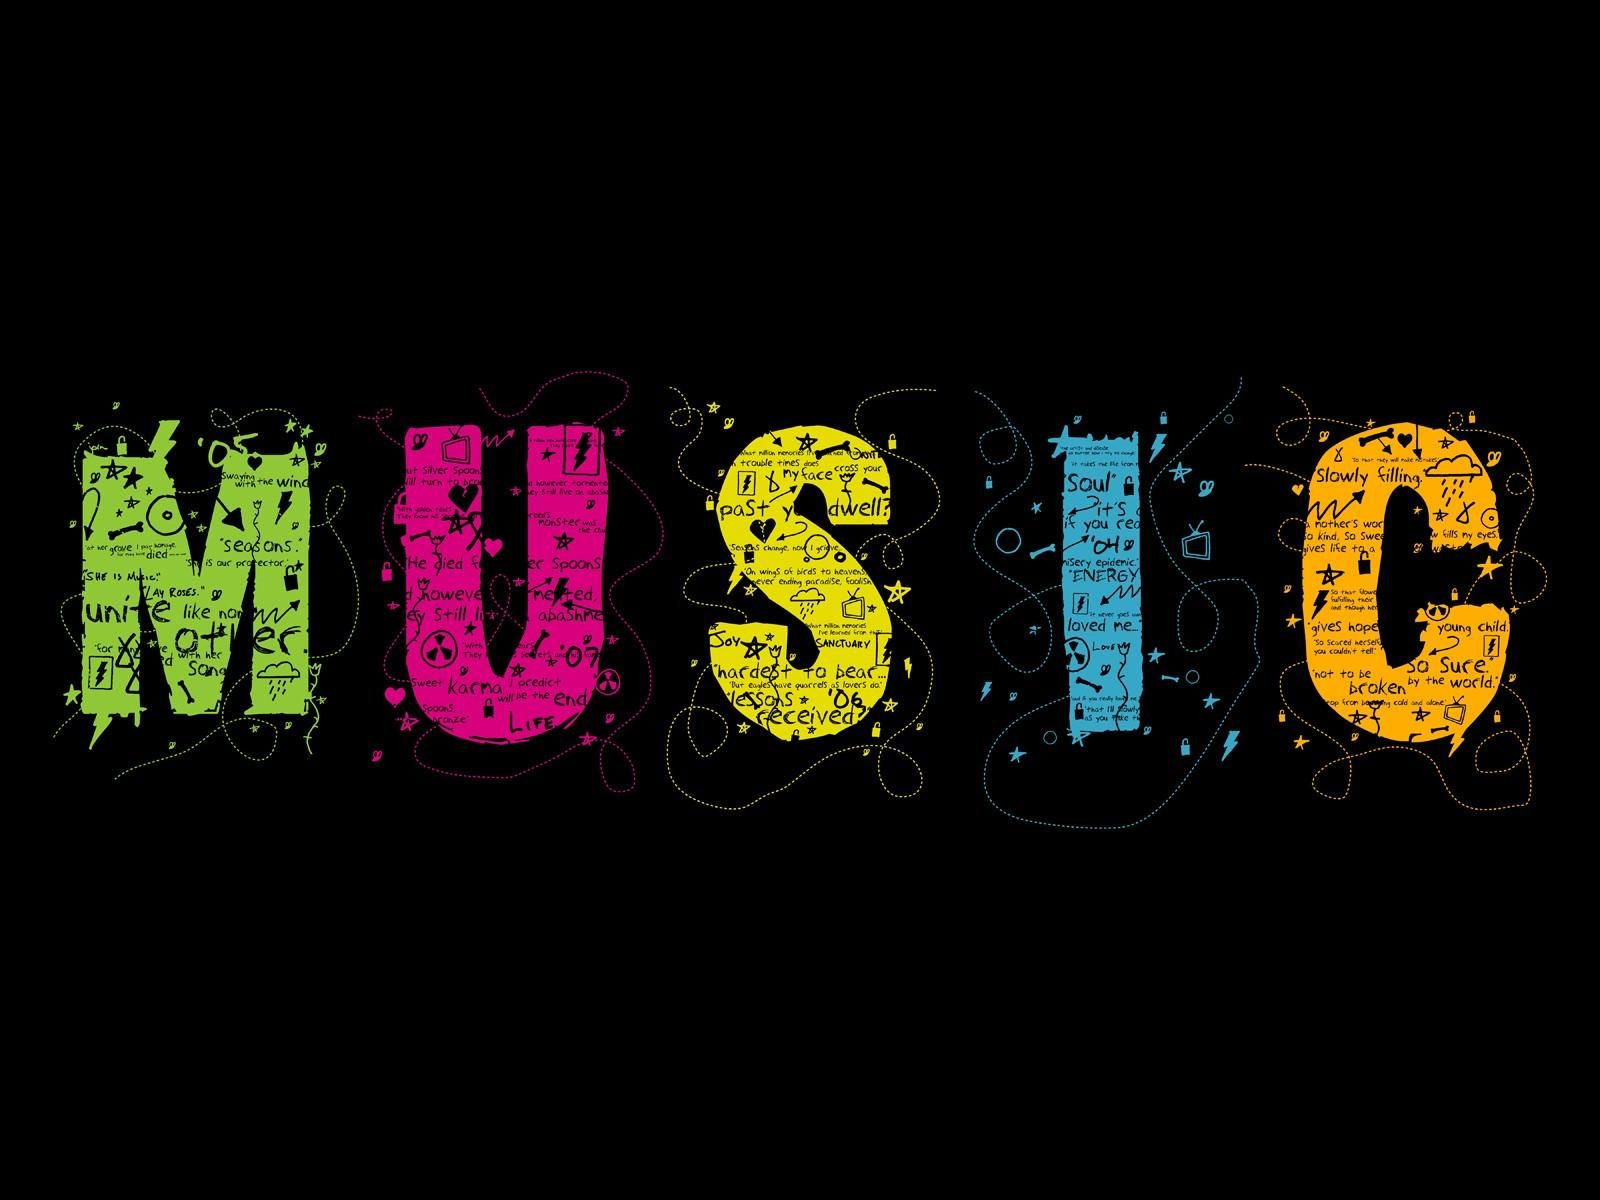 Hd music images download lover